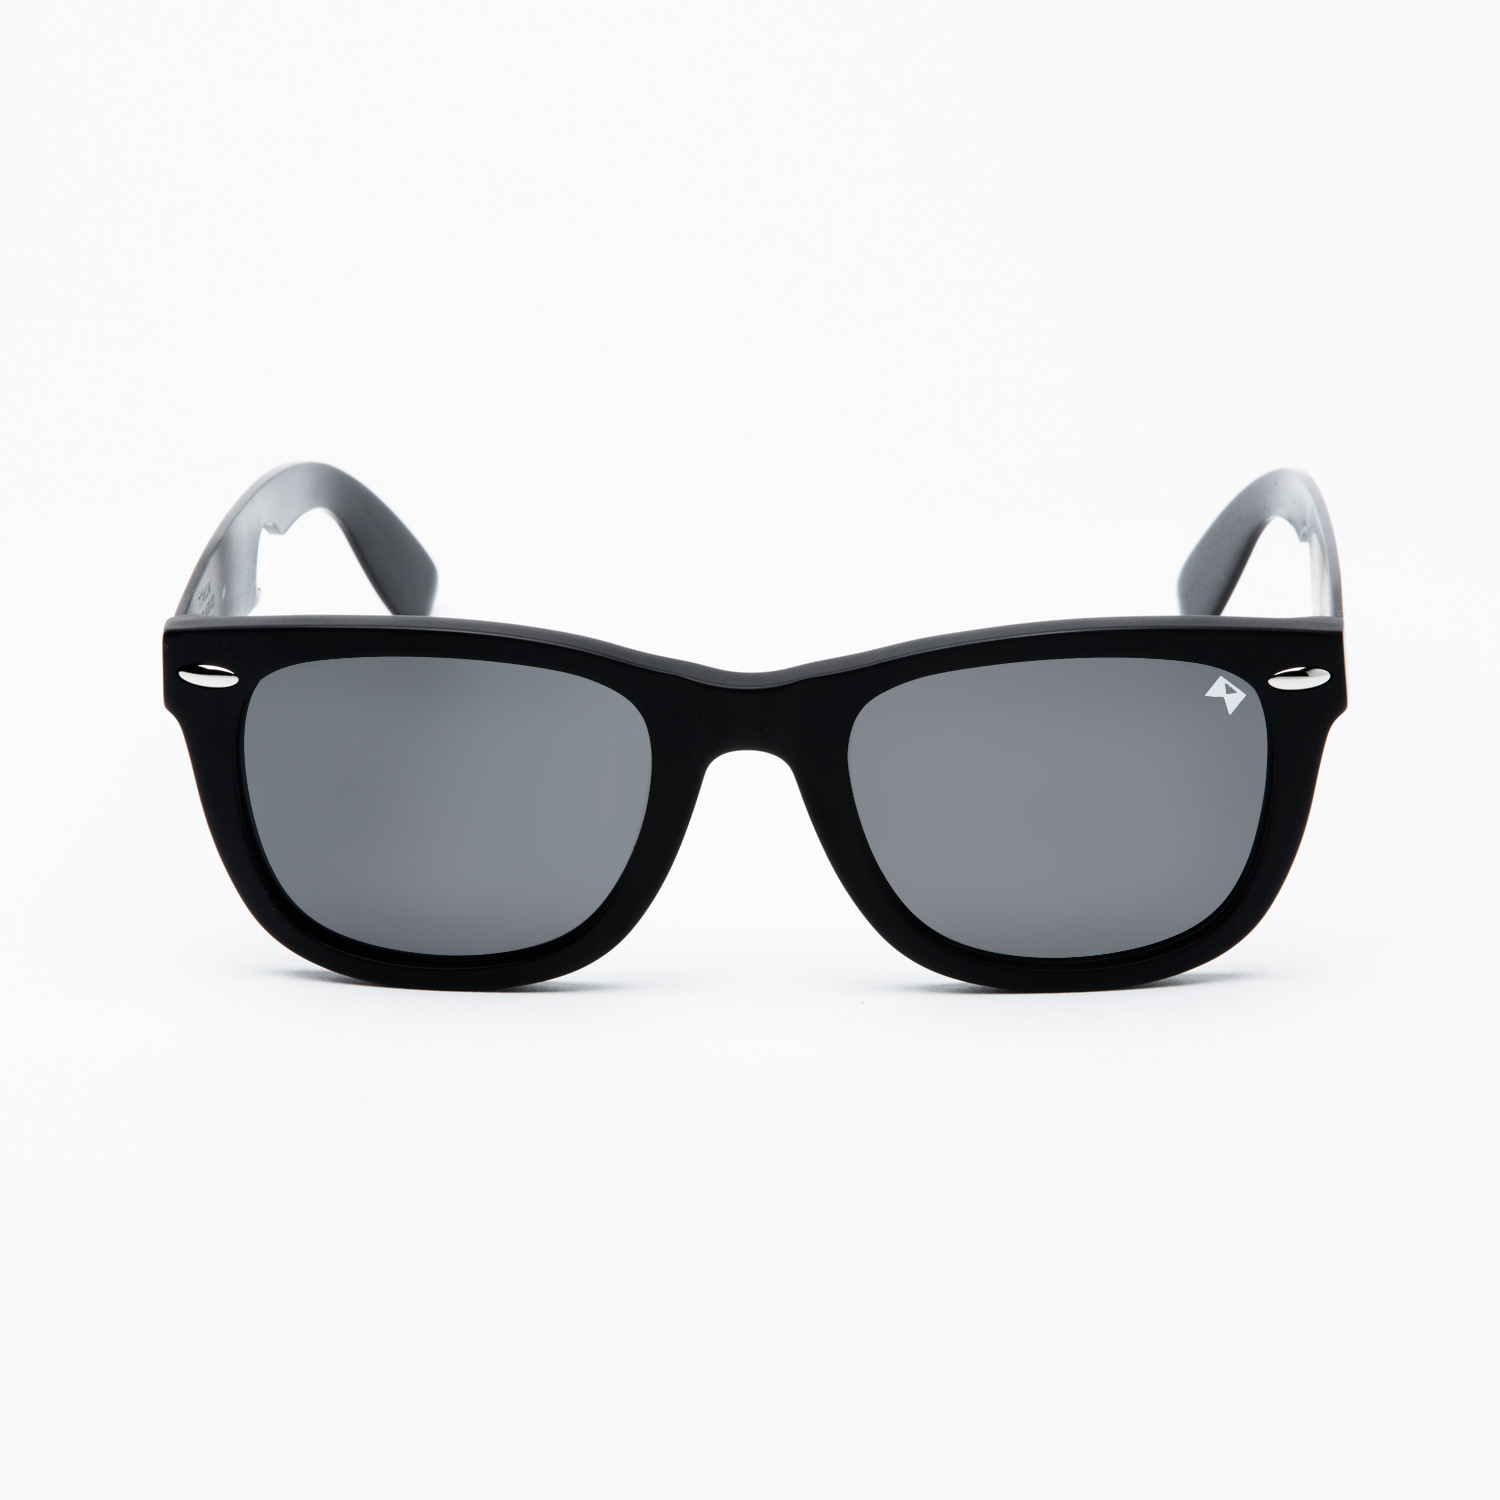 d90cfd44868 The Hook (Black Lens) - William Painter Sunglasses - Touch of Modern